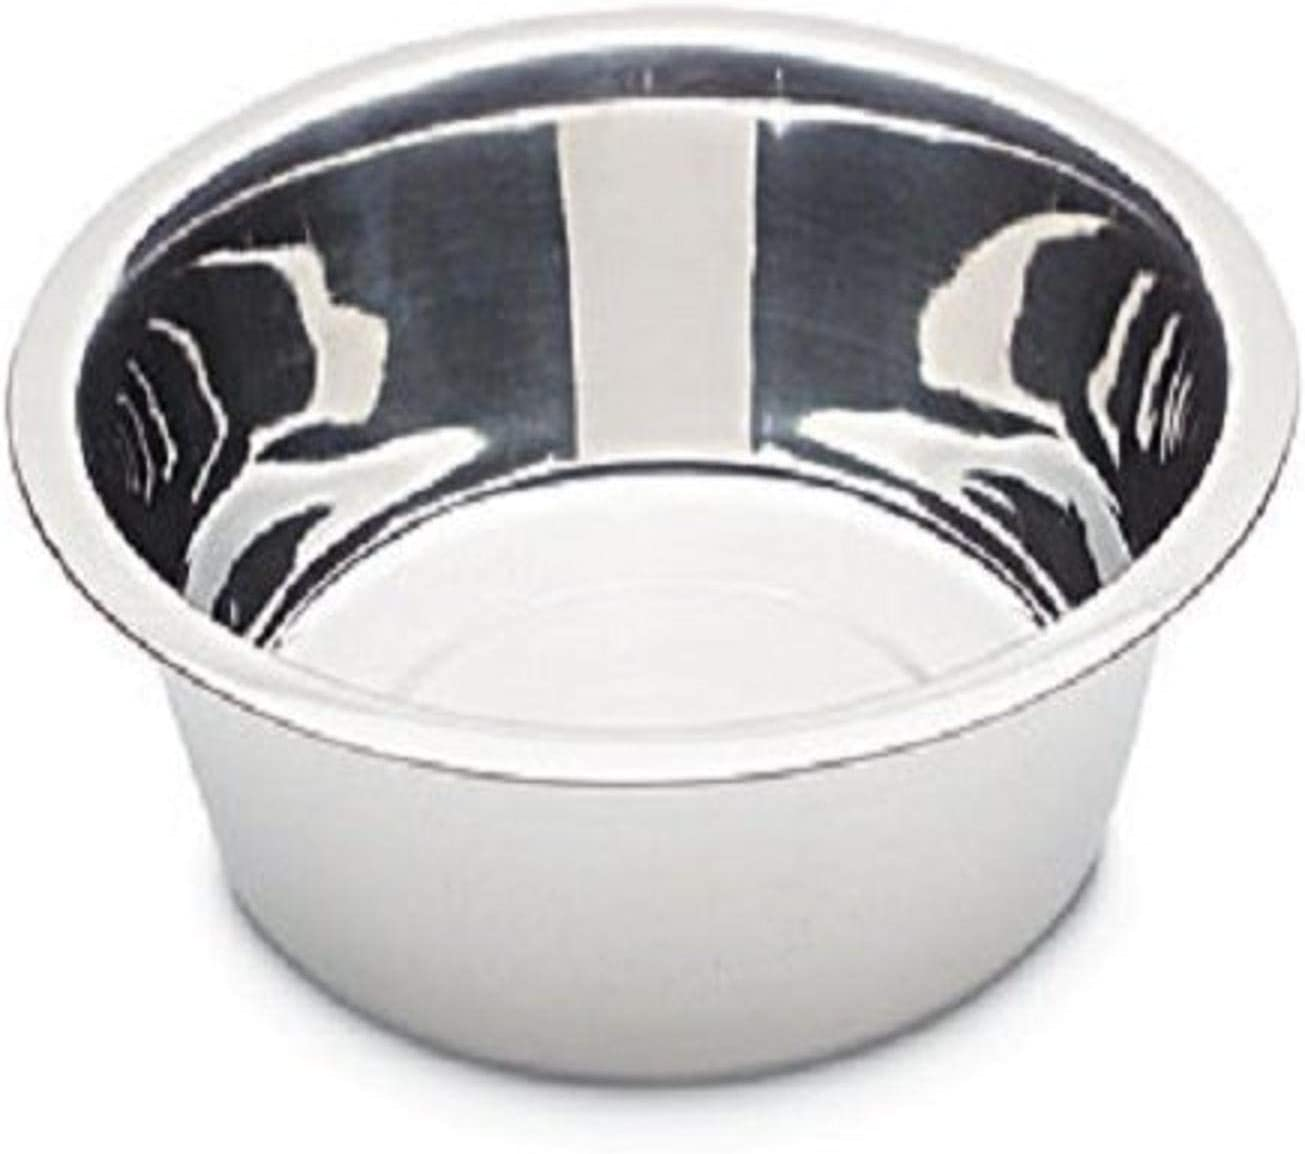 Petmate 8-Cup Stainless Steel Bowl